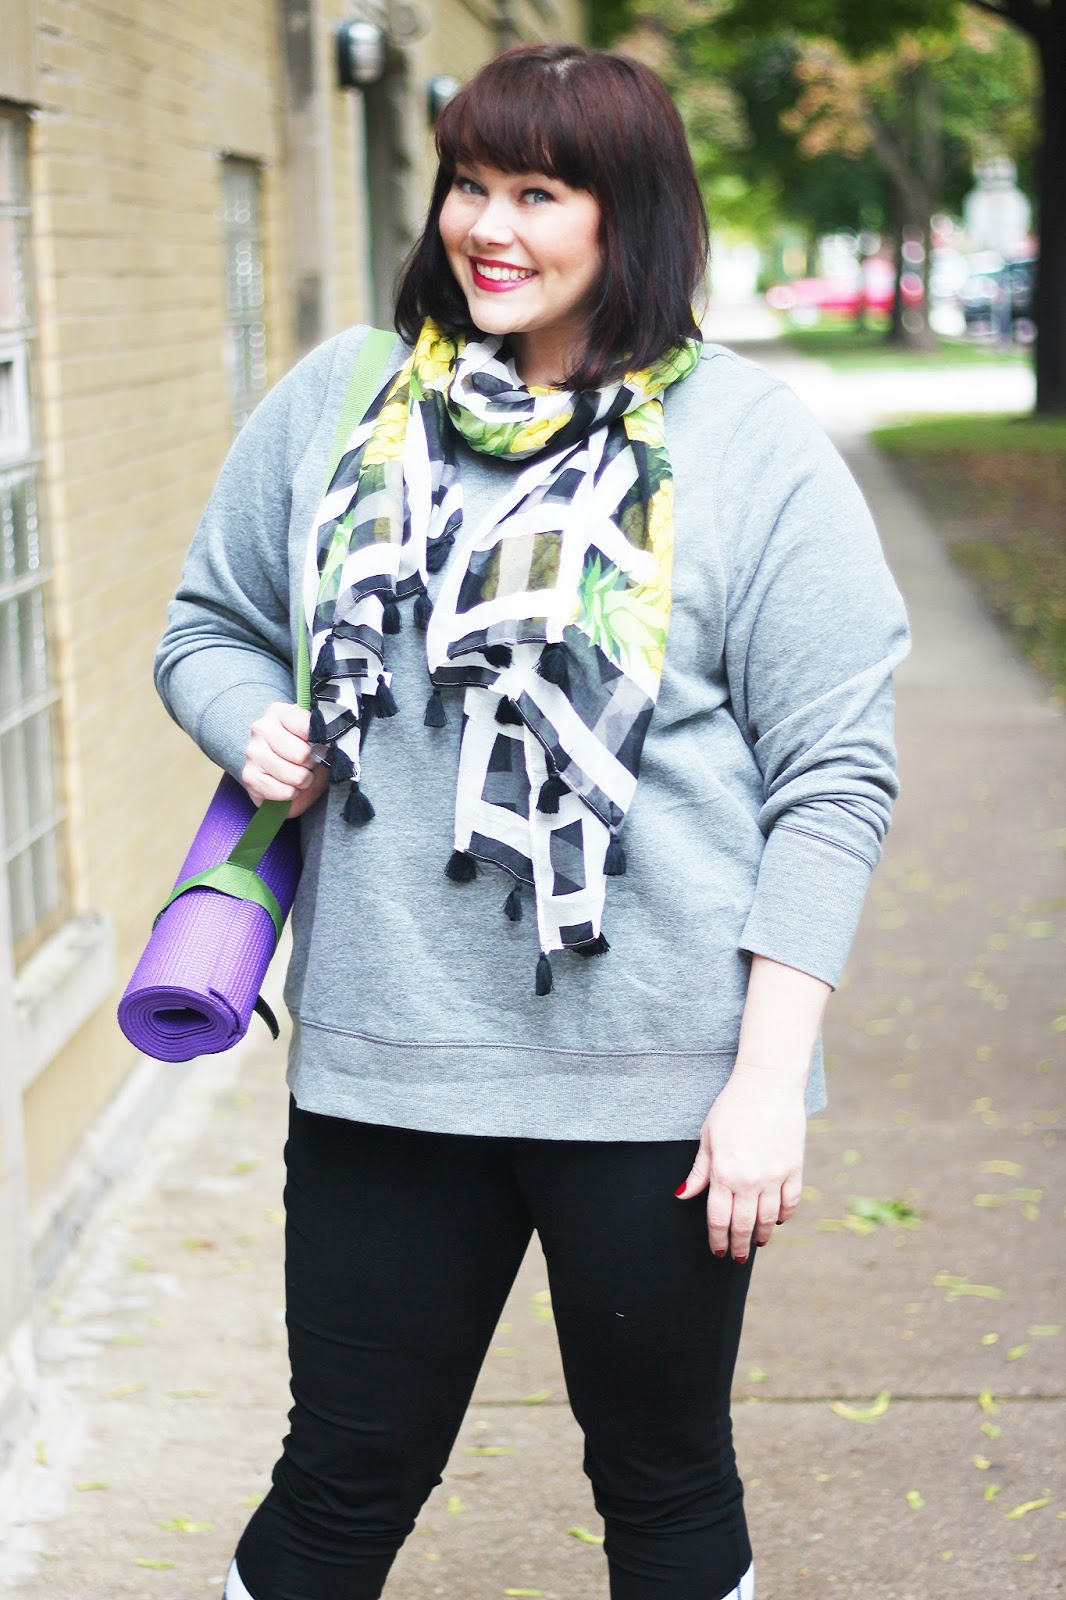 Plus Size Blogger Amber from Style Plus Curves in Plus Size Workout Wear from Kohl's